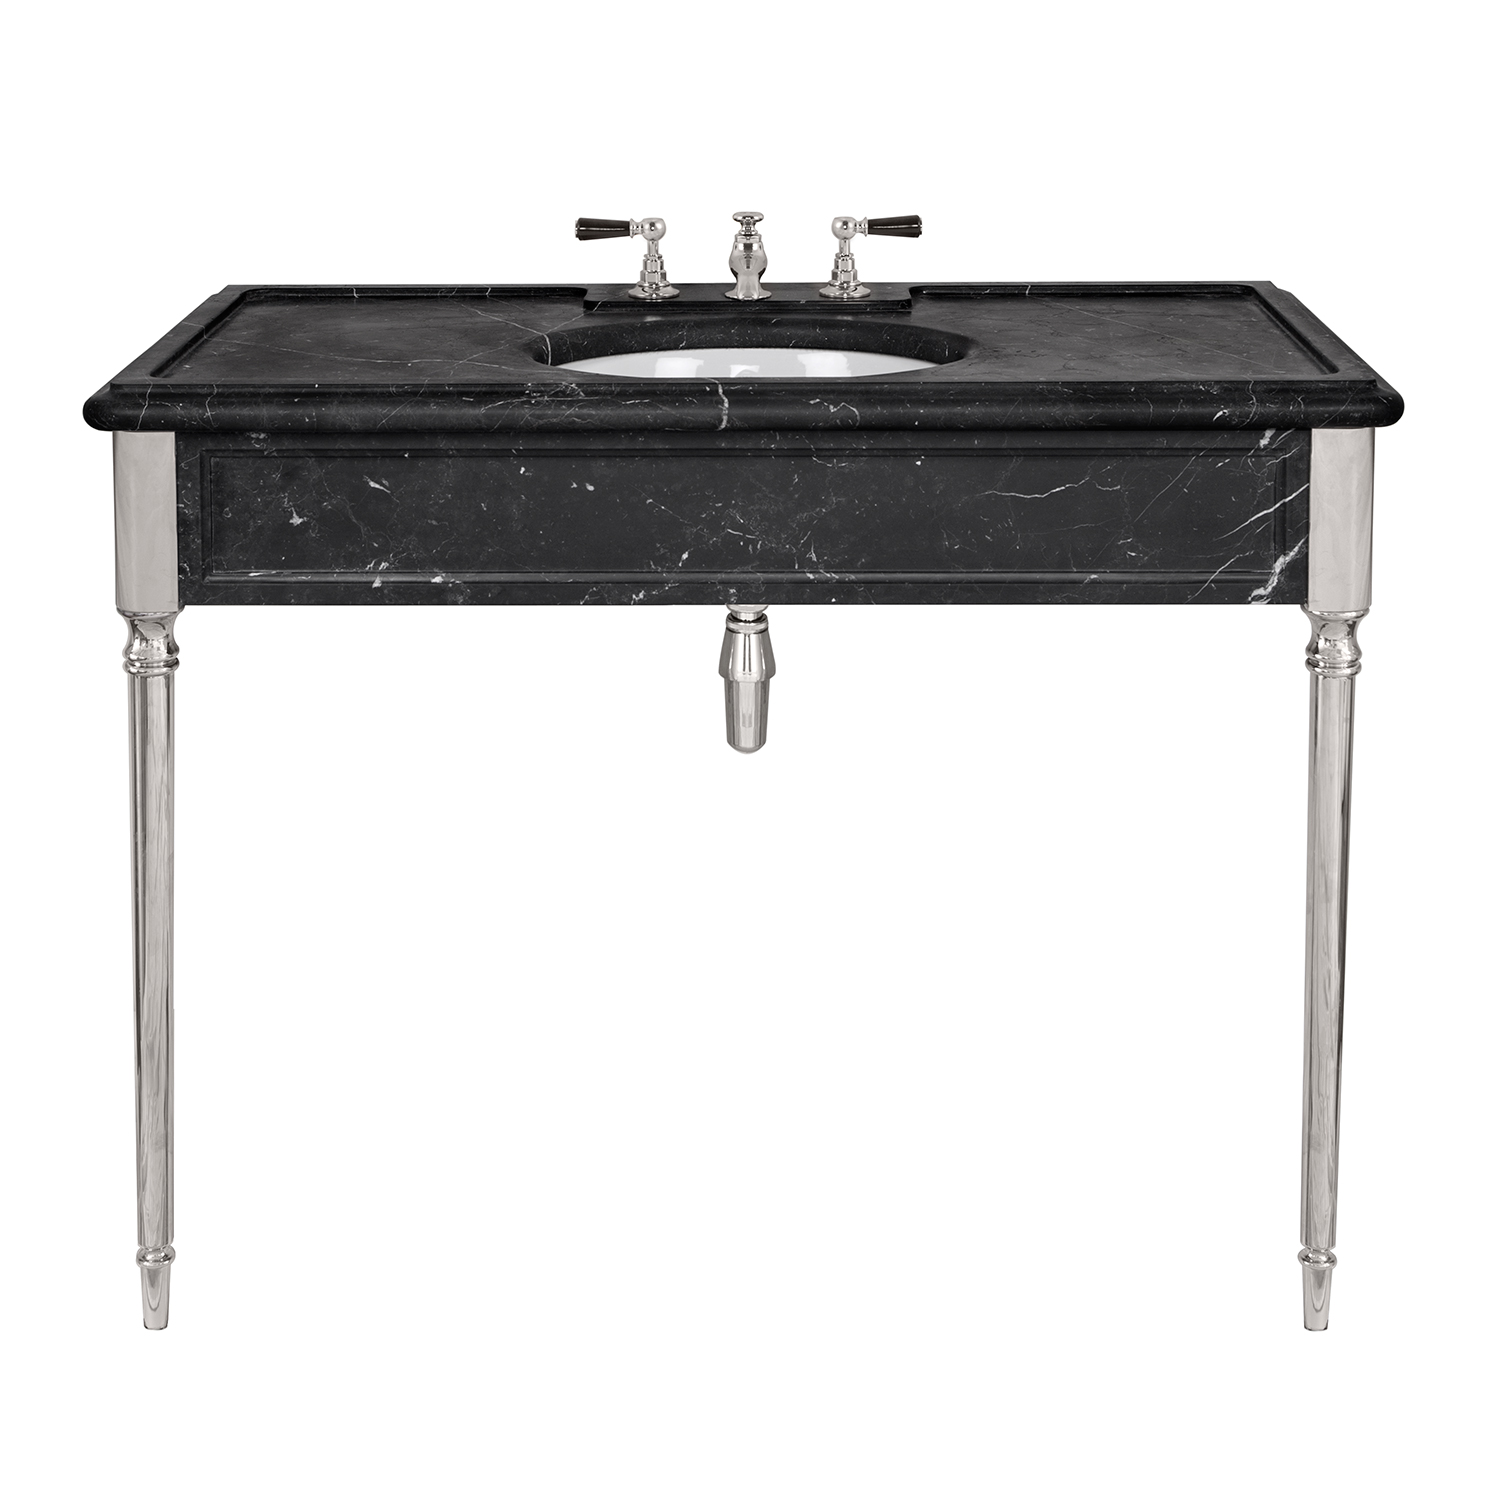 LB 6334 BK Edwardian single black Marquina marble console